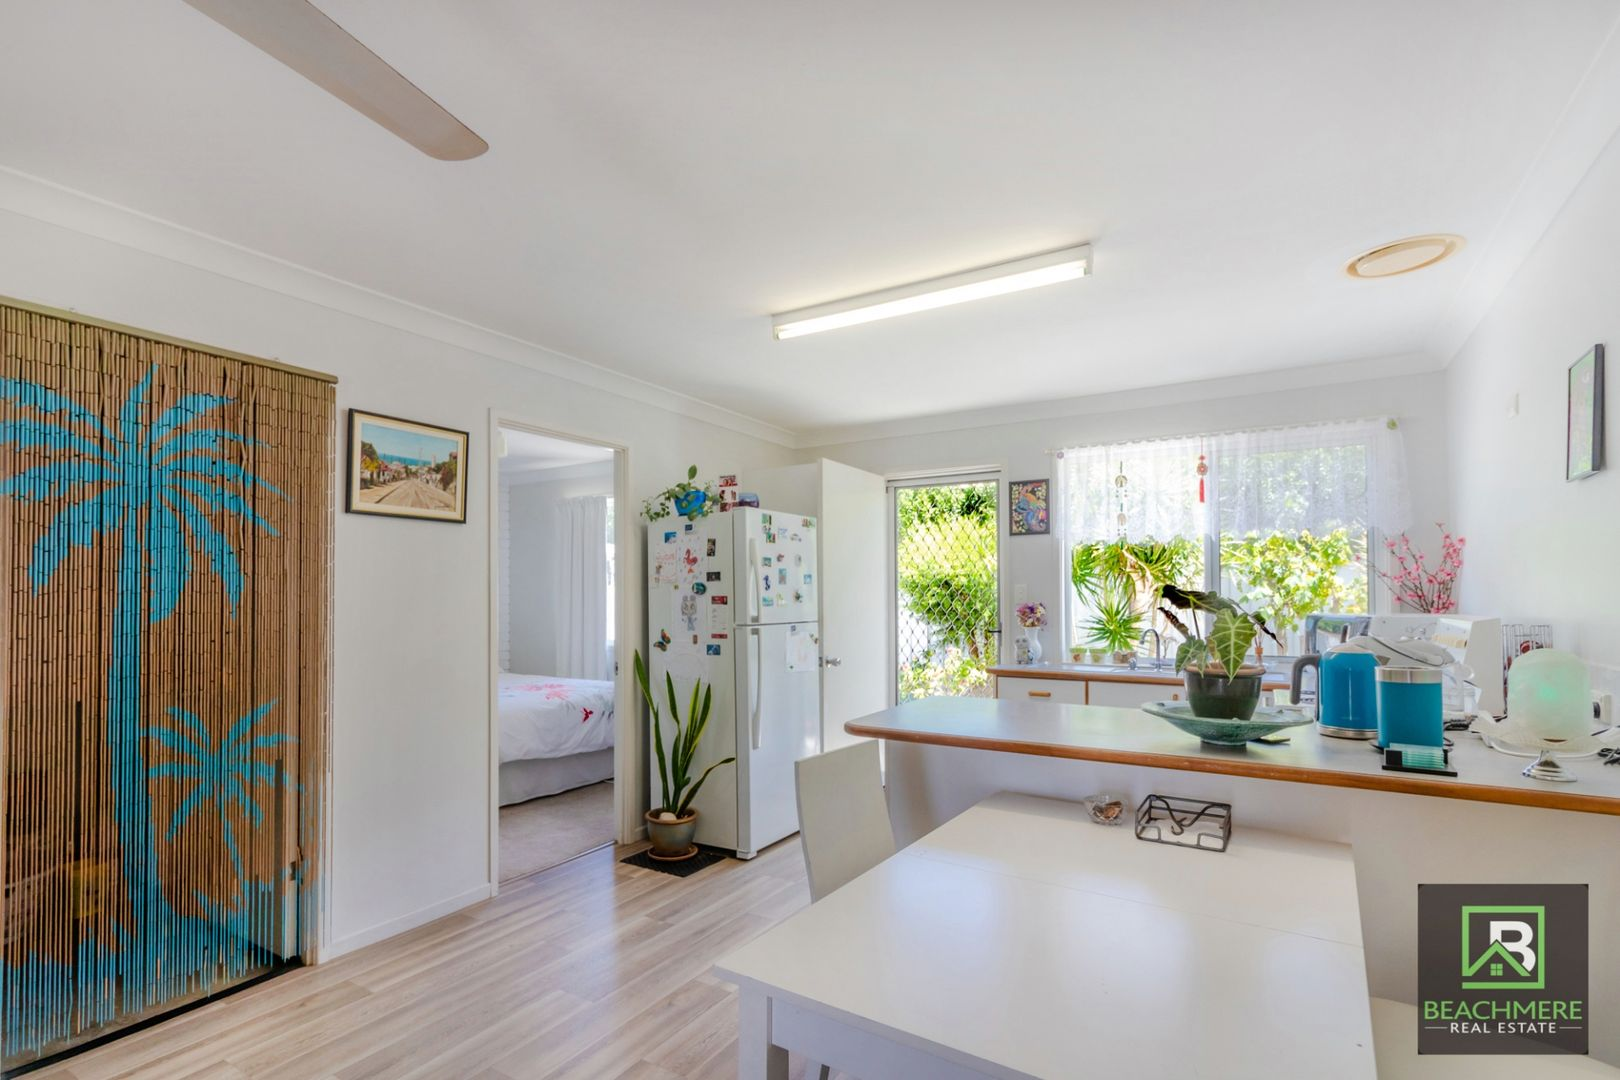 2/126 Bishop Road, Beachmere QLD 4510, Image 2